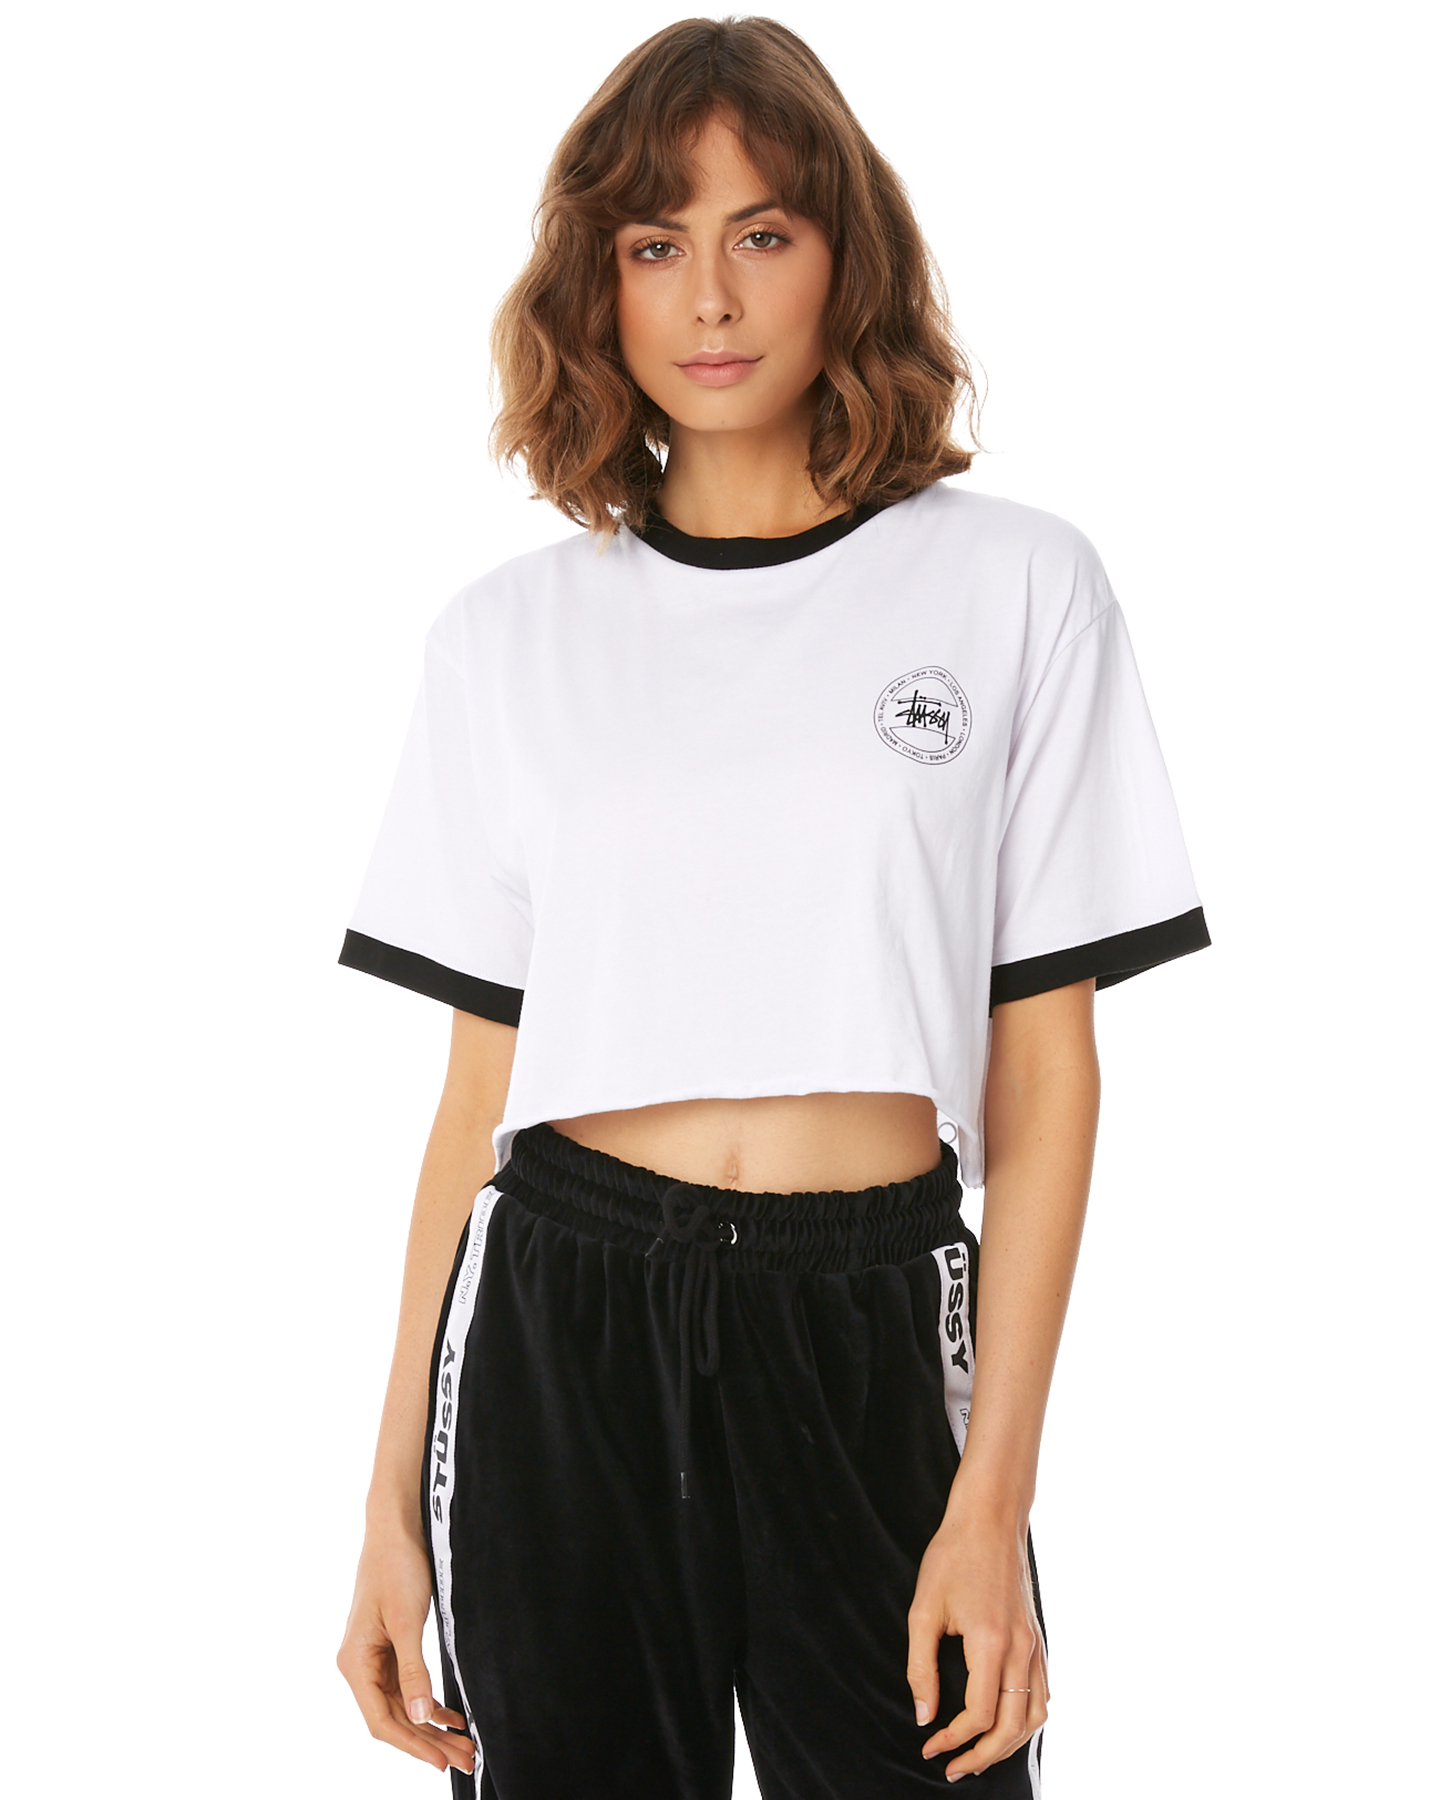 Stussy Women s Laguna Crop Ringer Tee Cotton White 9347385917464  975bca113a